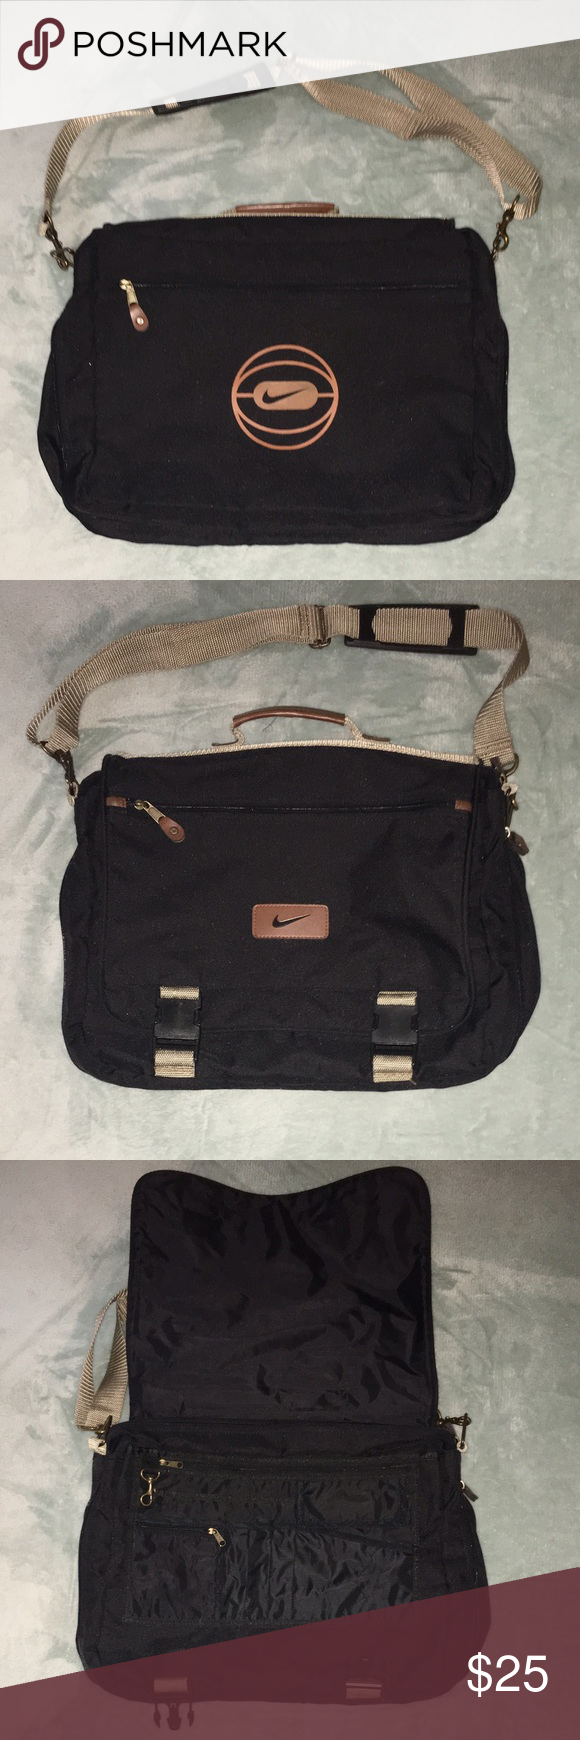 9ab8a65045d8 Nike Messenger Bag Laptop Computer School Nike Messenger Bag! Please see  pictures for